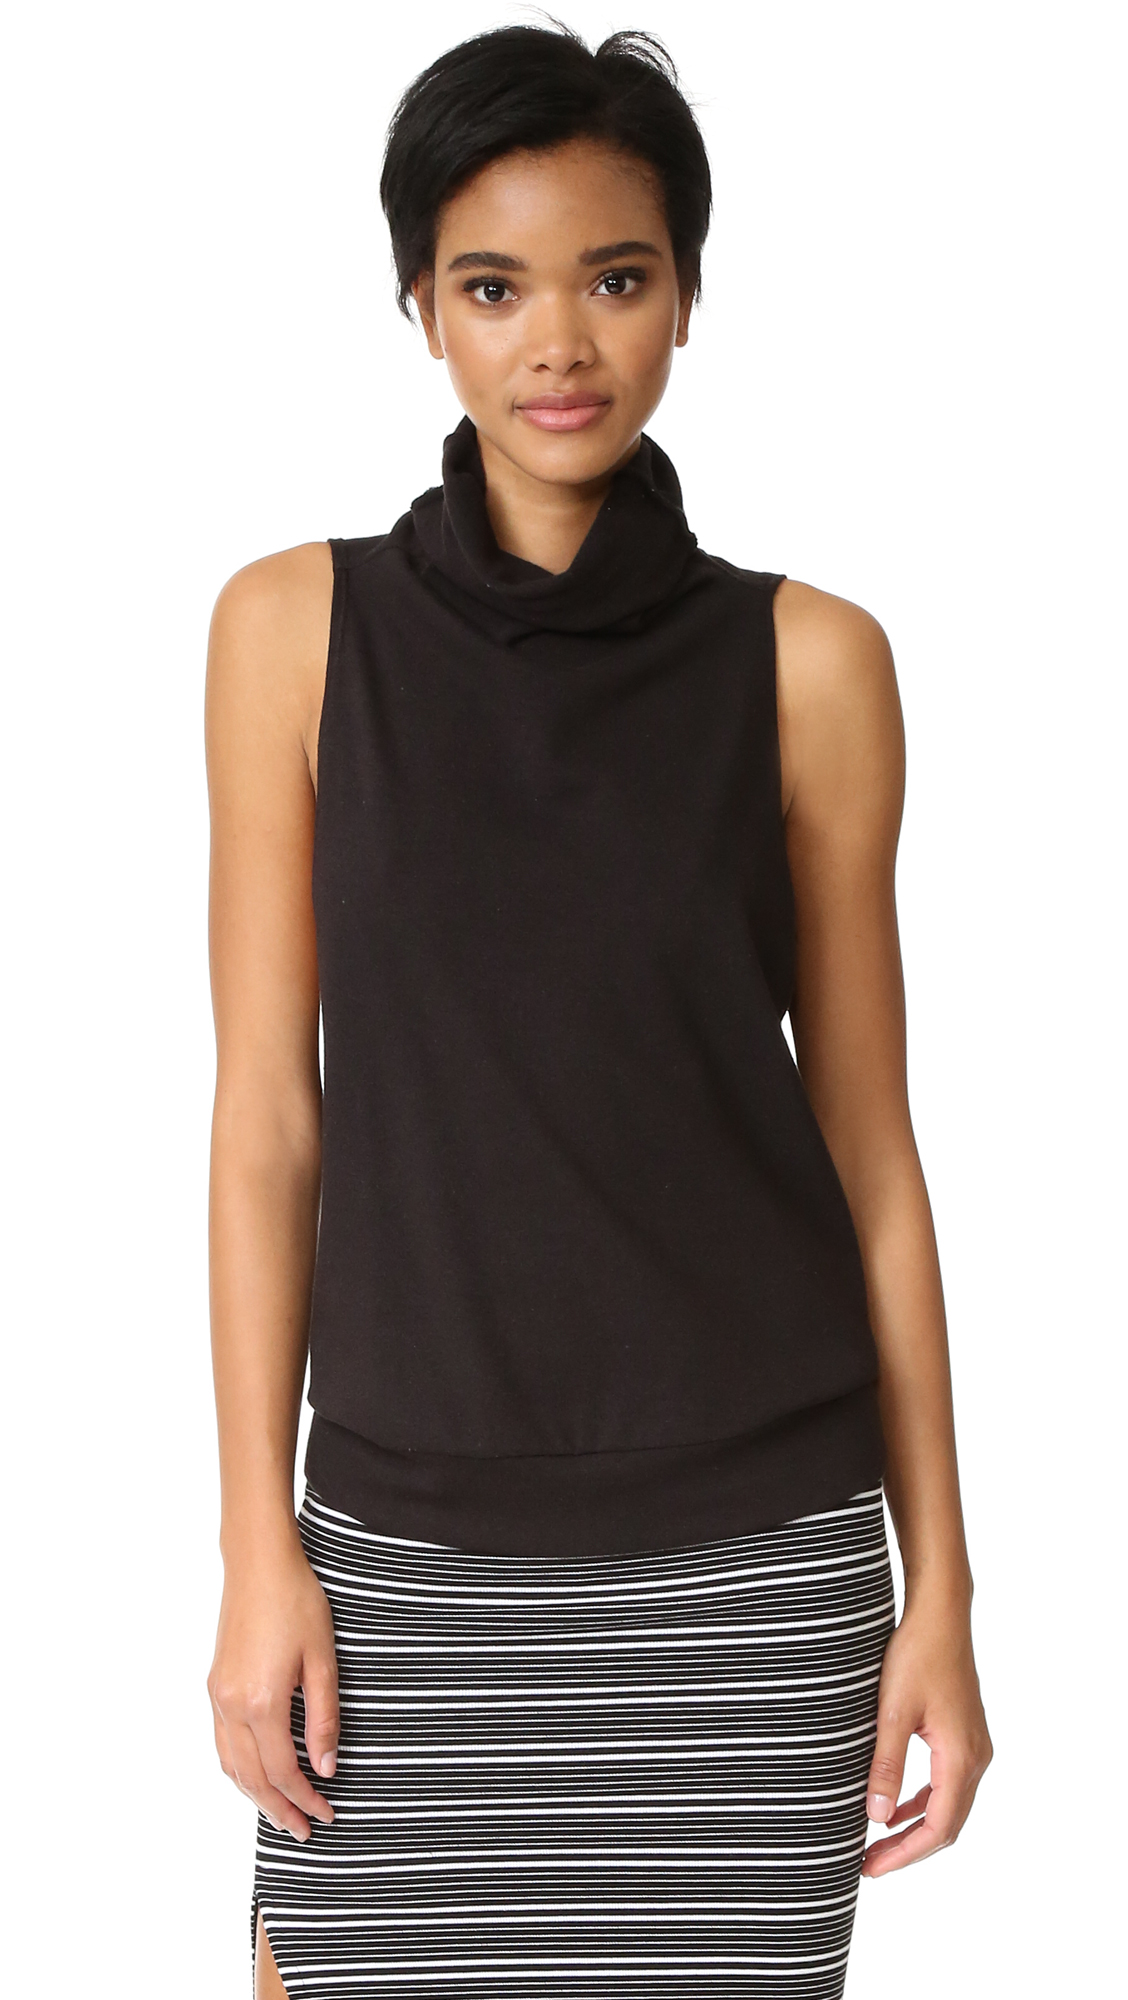 Lanston Turtleneck Sleeveless Tank - Black at Shopbop